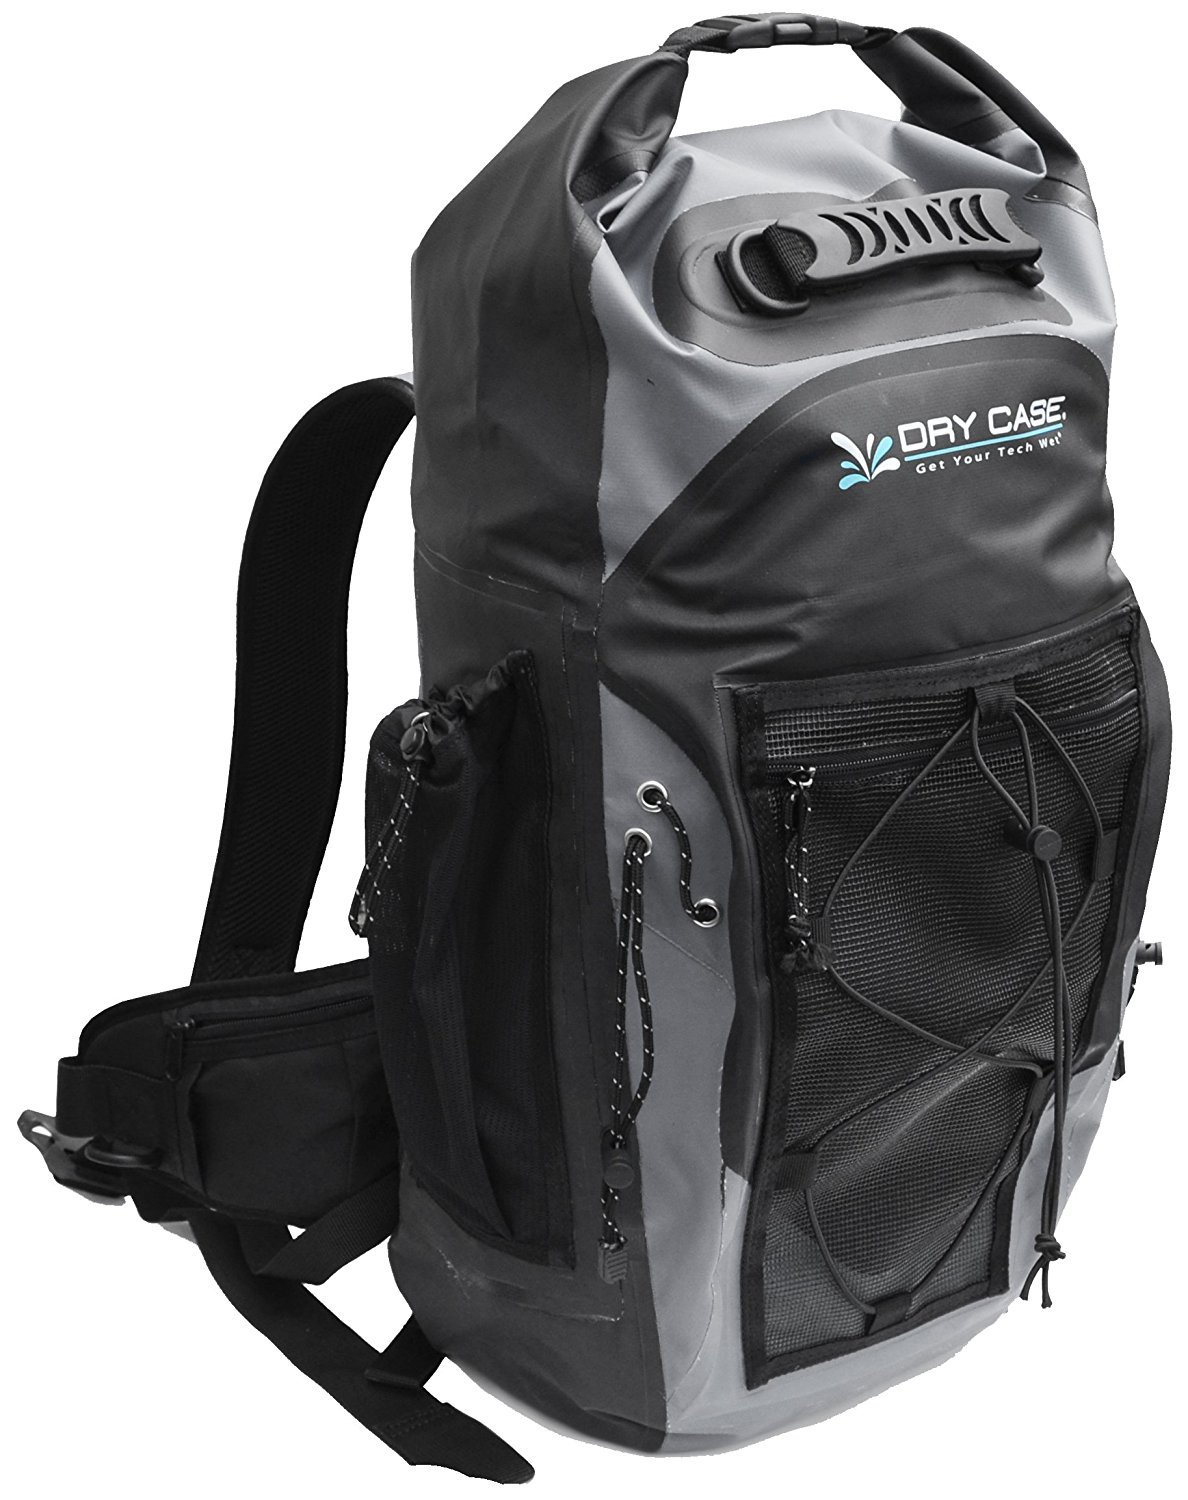 DryCASE 2015 Masonboro 35 Liter Waterproof Adventure Backpack - BP-35